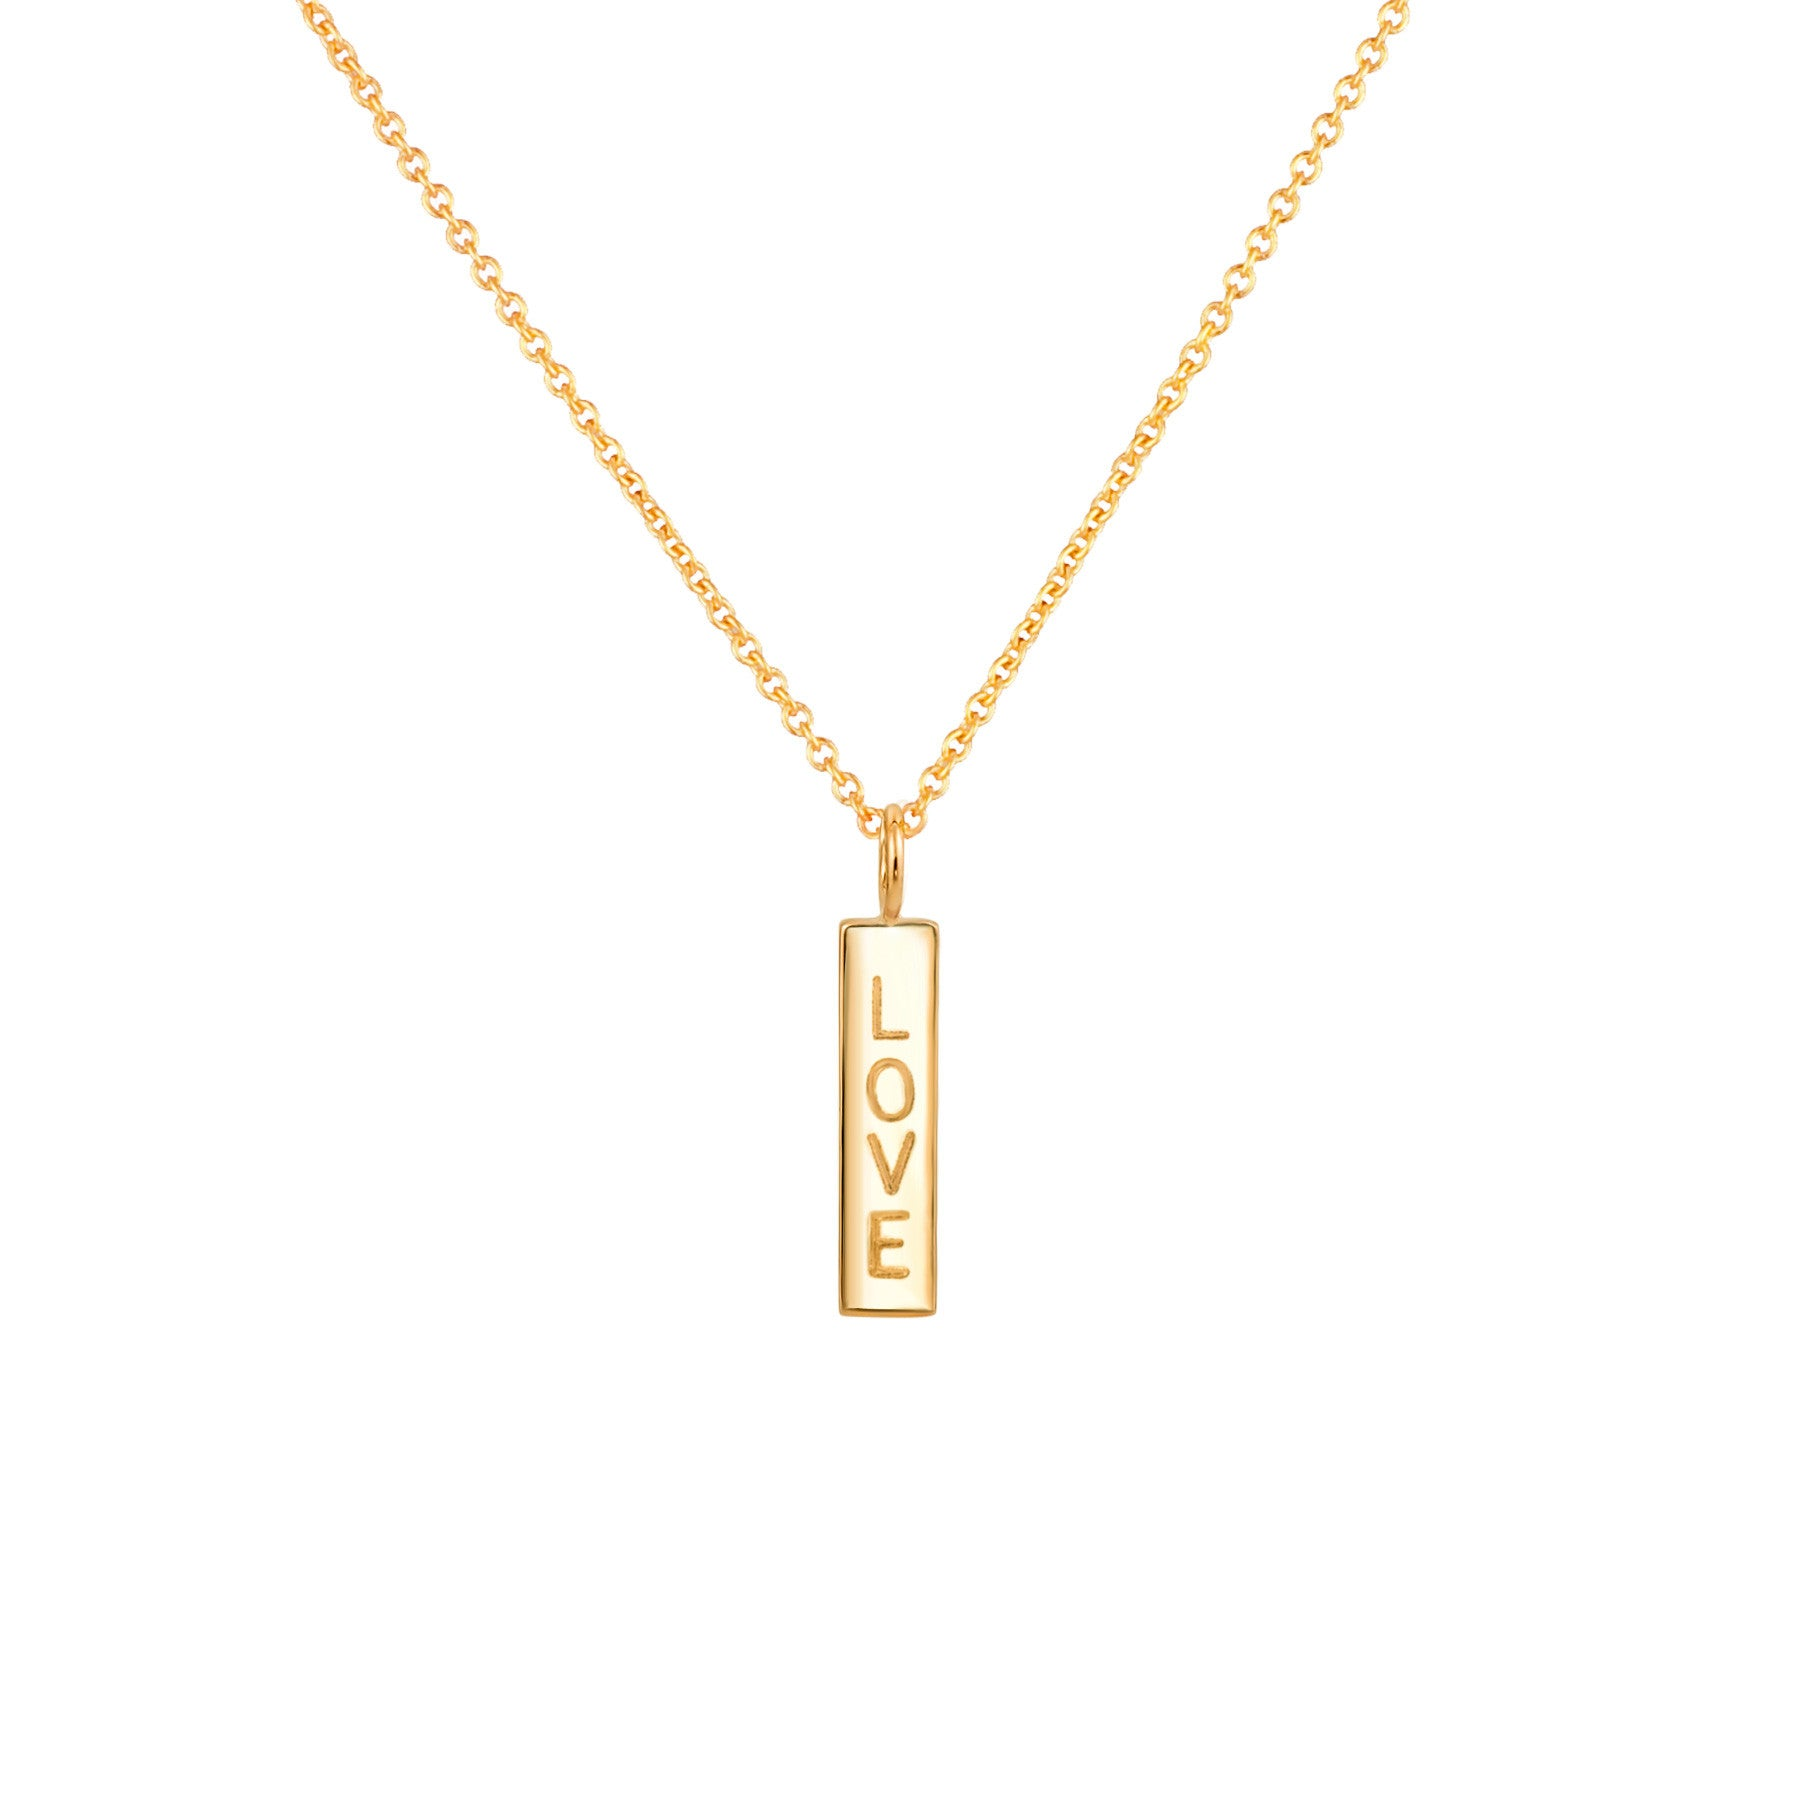 PETITE NAME DROP NECKLACE 14K